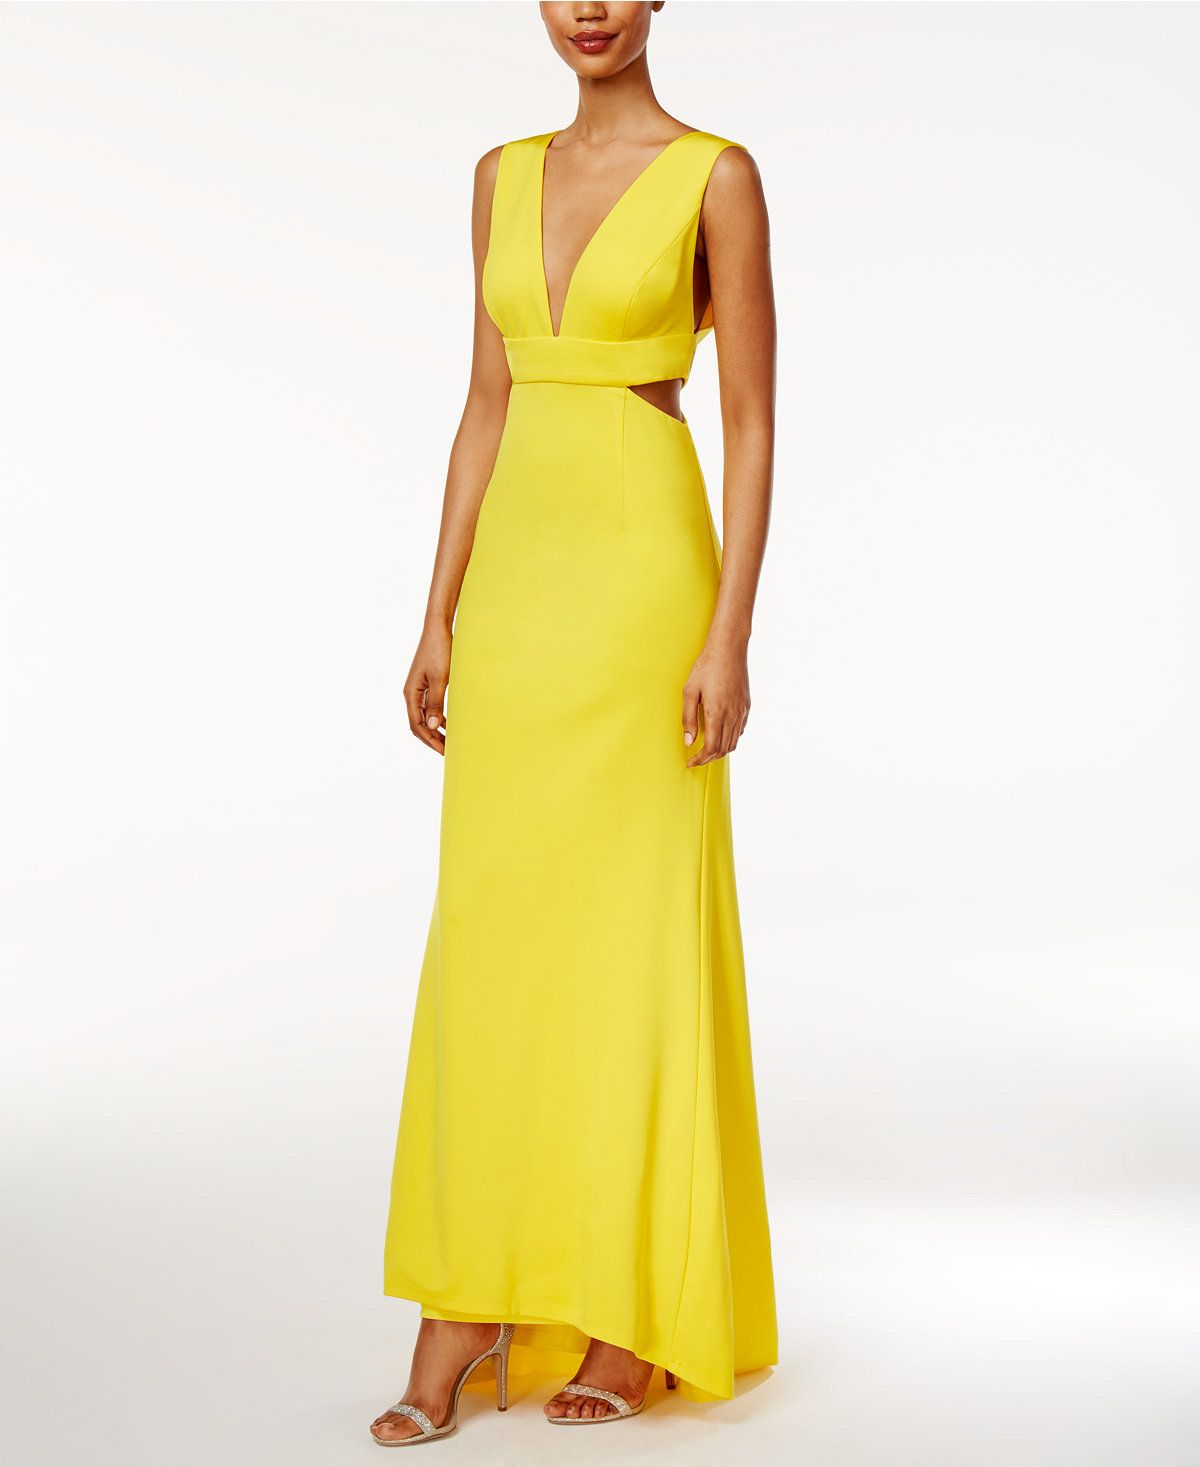 86e30be99c9 Adrianna Papell V-Neck High-Low Gown - Dresses - Women - Macy s